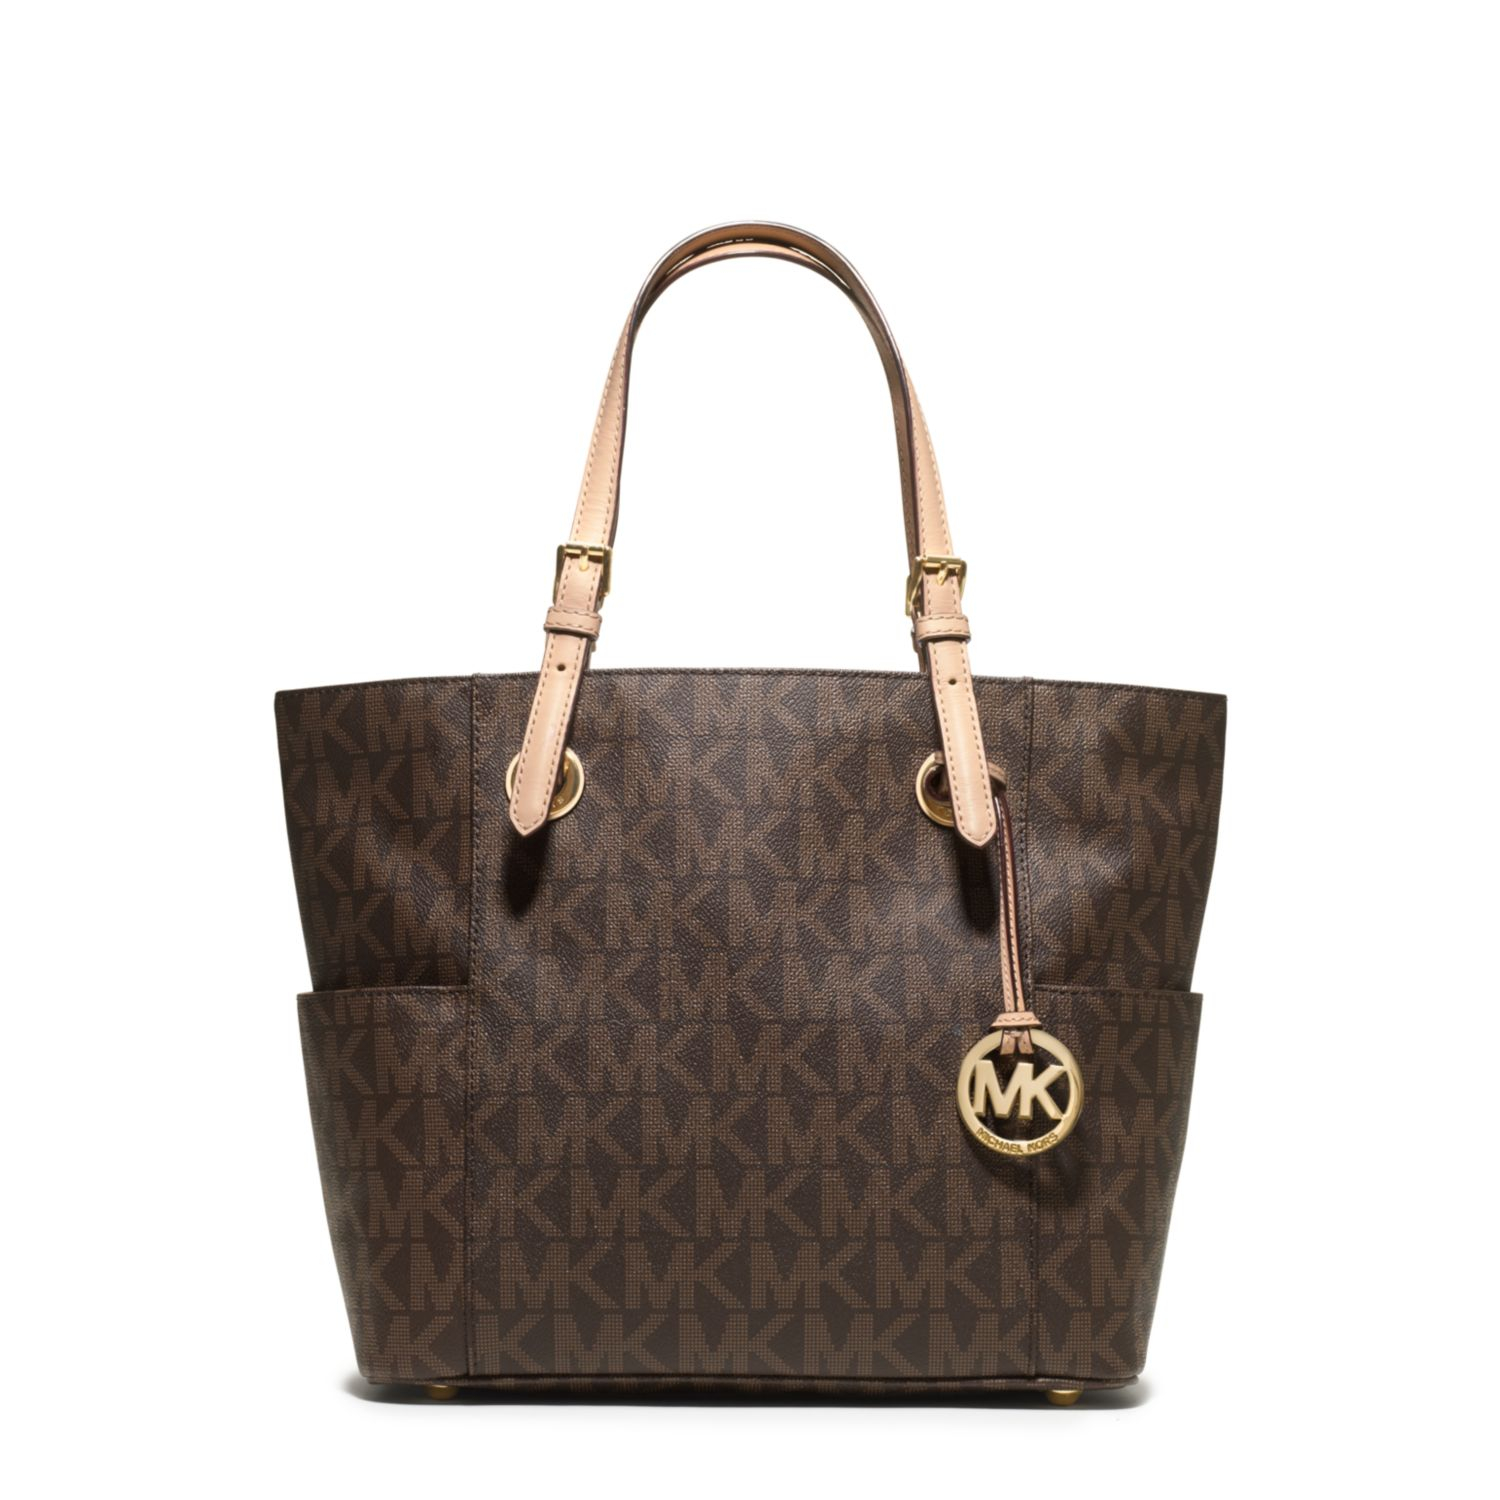 michael kors jet set logo tote in brown lyst. Black Bedroom Furniture Sets. Home Design Ideas